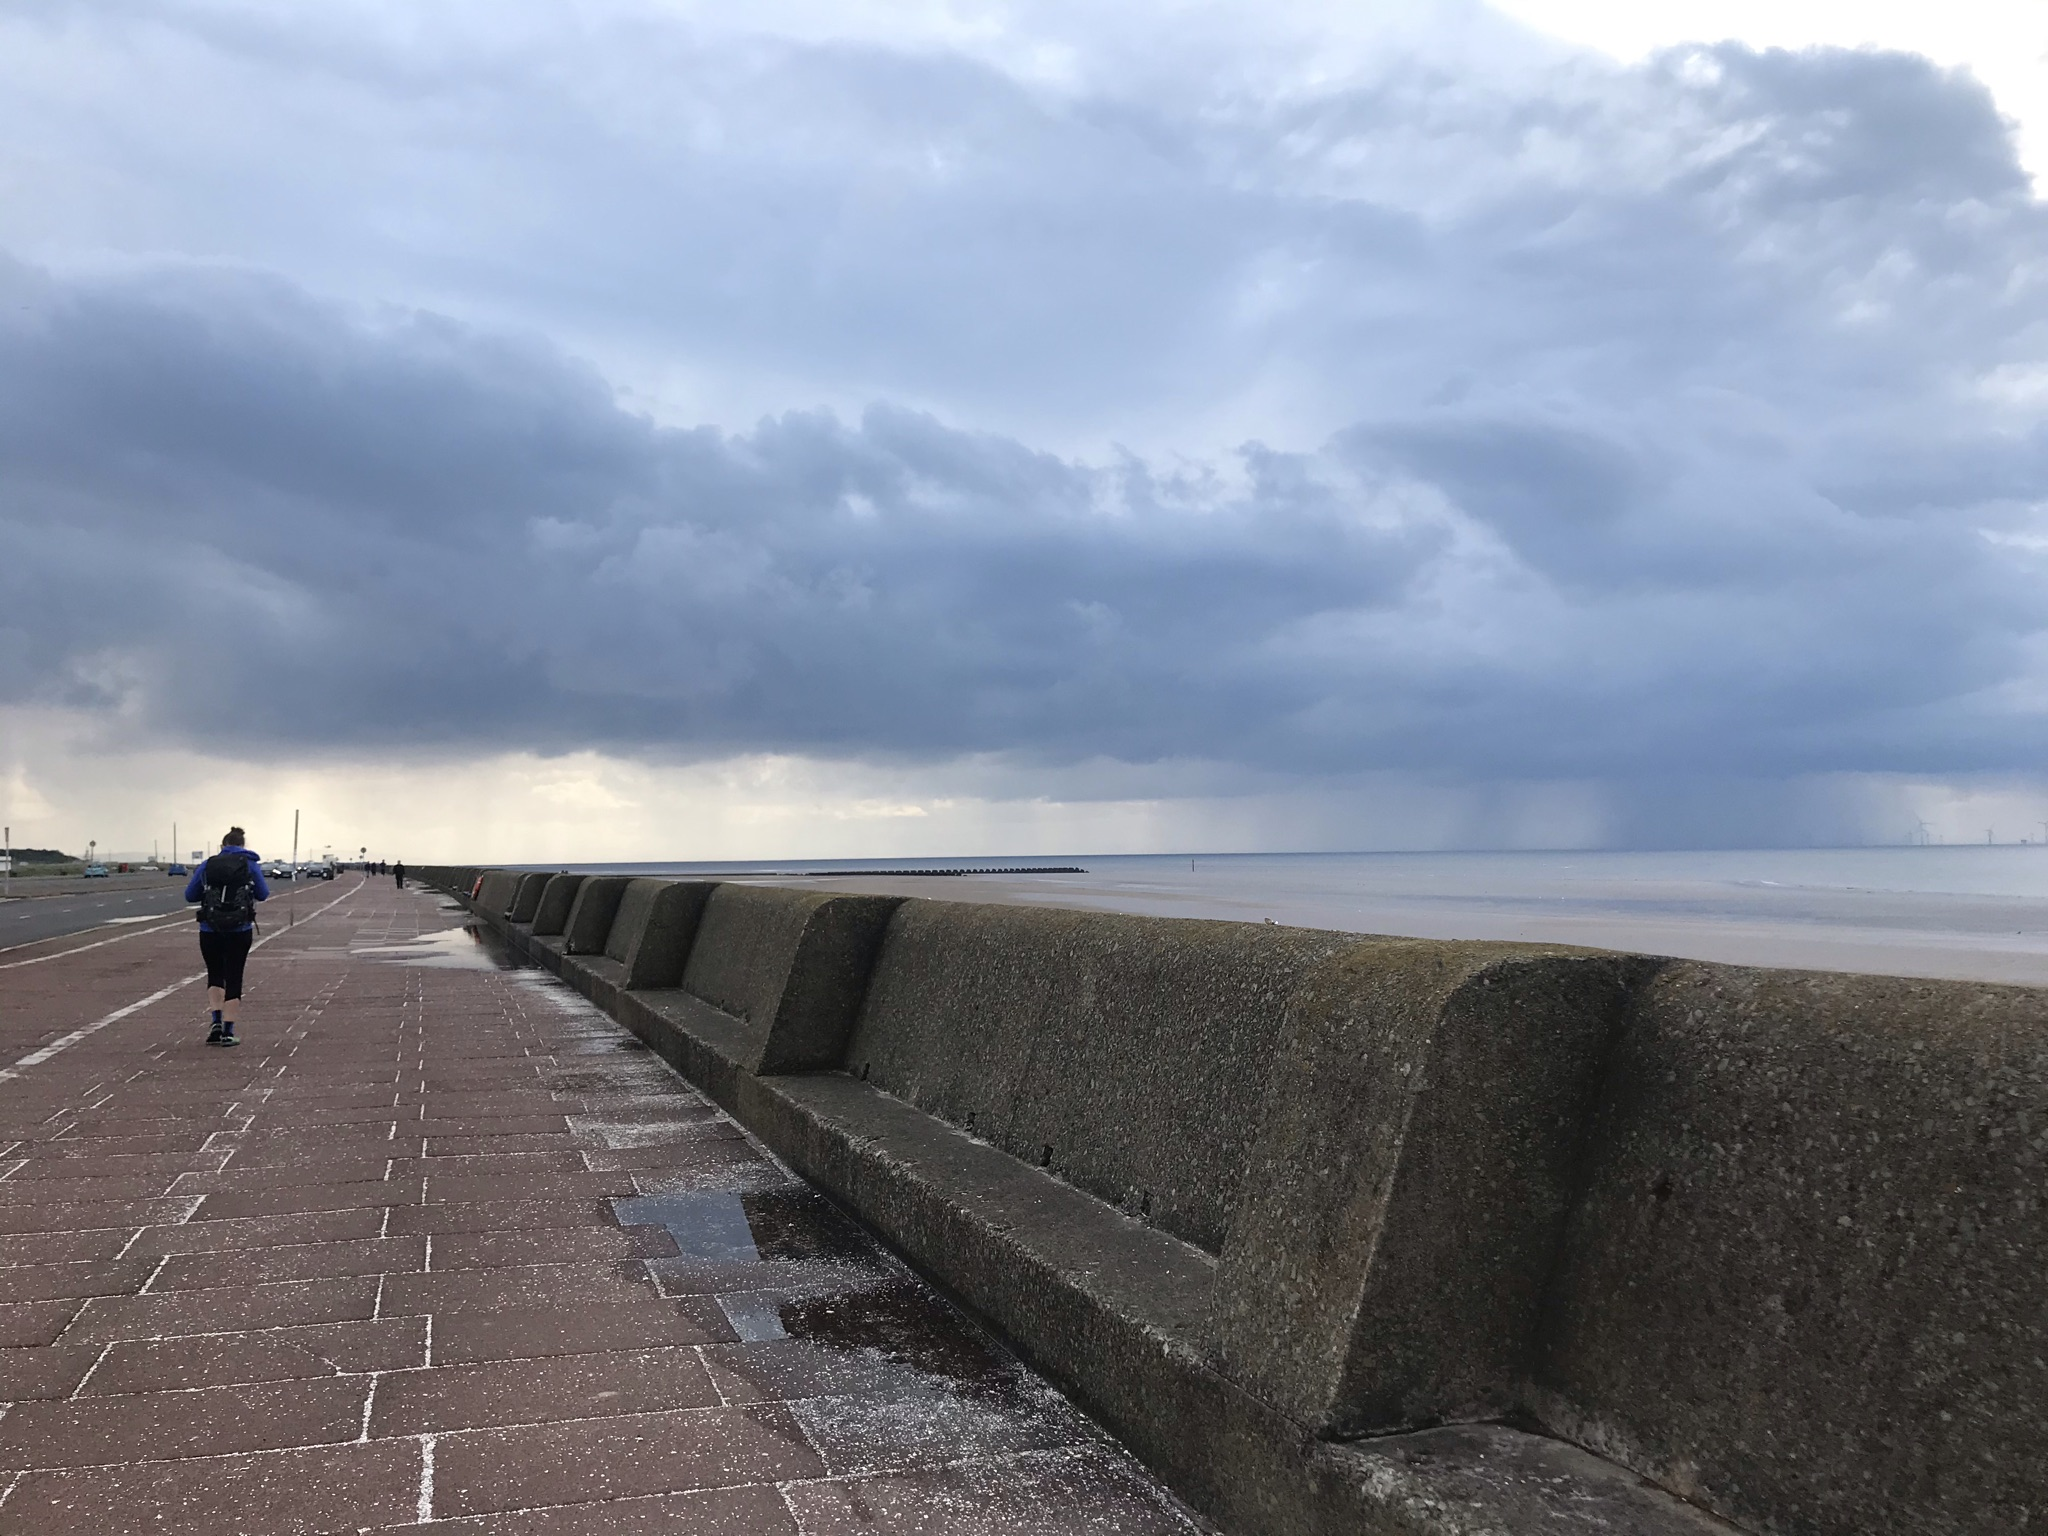 Sarah walking away from the camera along an empty promenade with a sea wall. In the far distance there is heavy rain